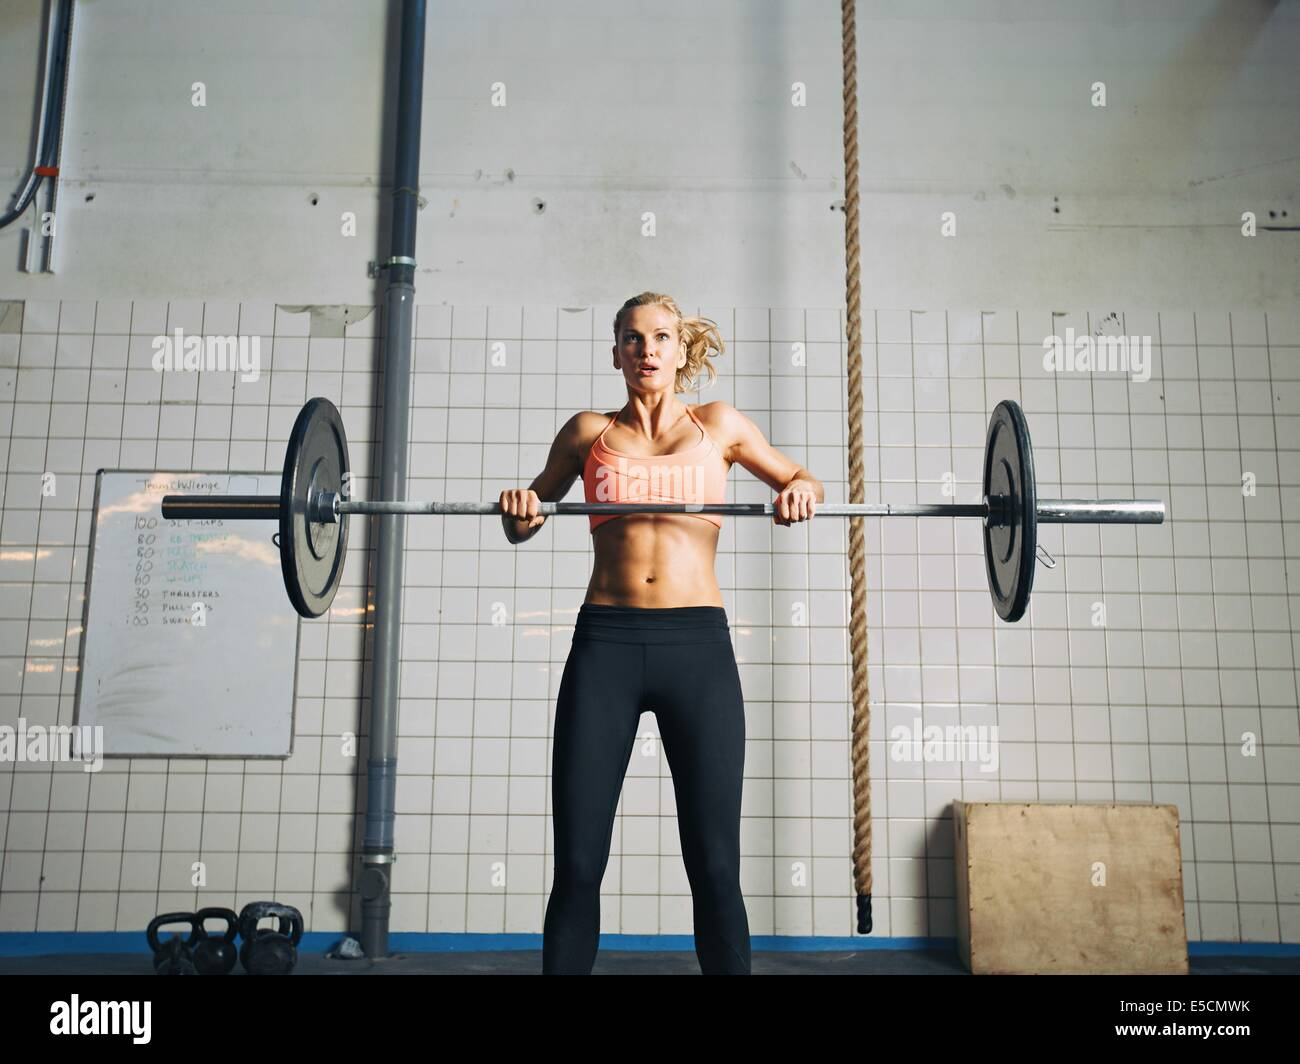 Young strong woman practices cross fit in a gym. Fit female holding a barbell with weights for crossfit. - Stock Image